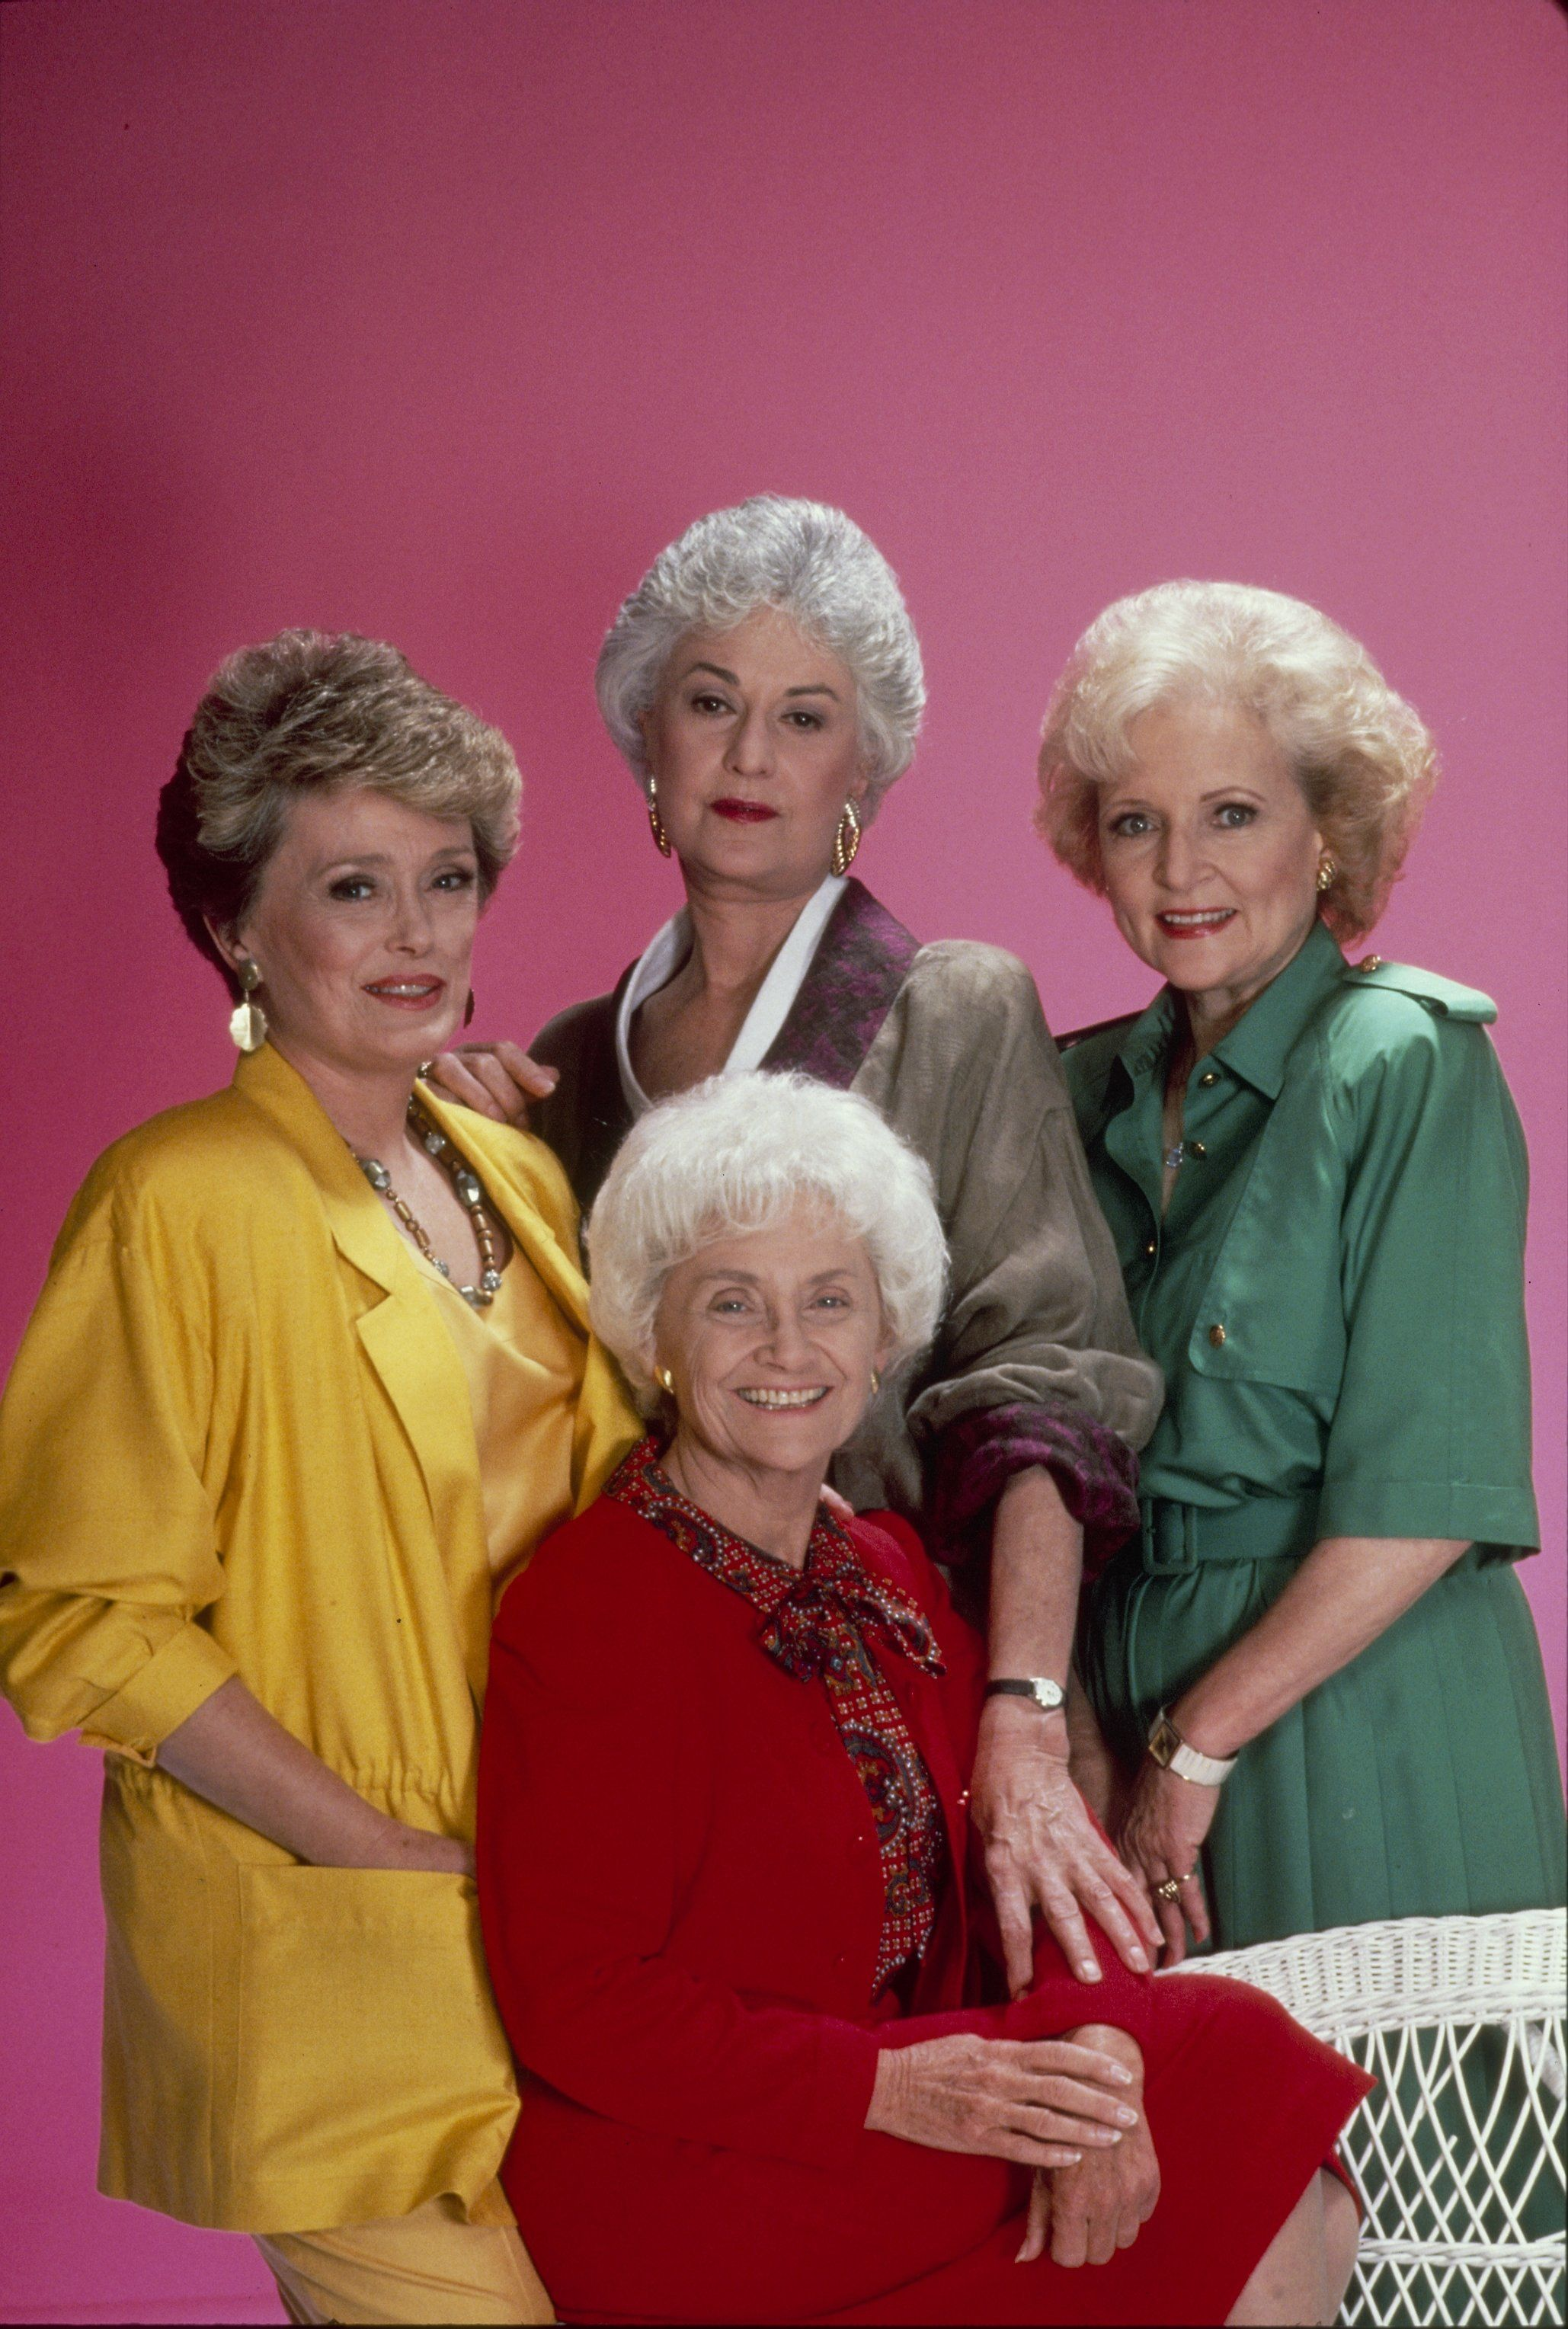 UNITED STATES - SEPTEMBER 24:  THE GOLDEN GIRLS - 9/24/85- 9/24/92, RUE MCCLANAHAN, ESTELLE GETTY, BEA ARTHUR, BETTY WHITE,  (Photo by ABC Photo Archives/ABC via Getty Images)